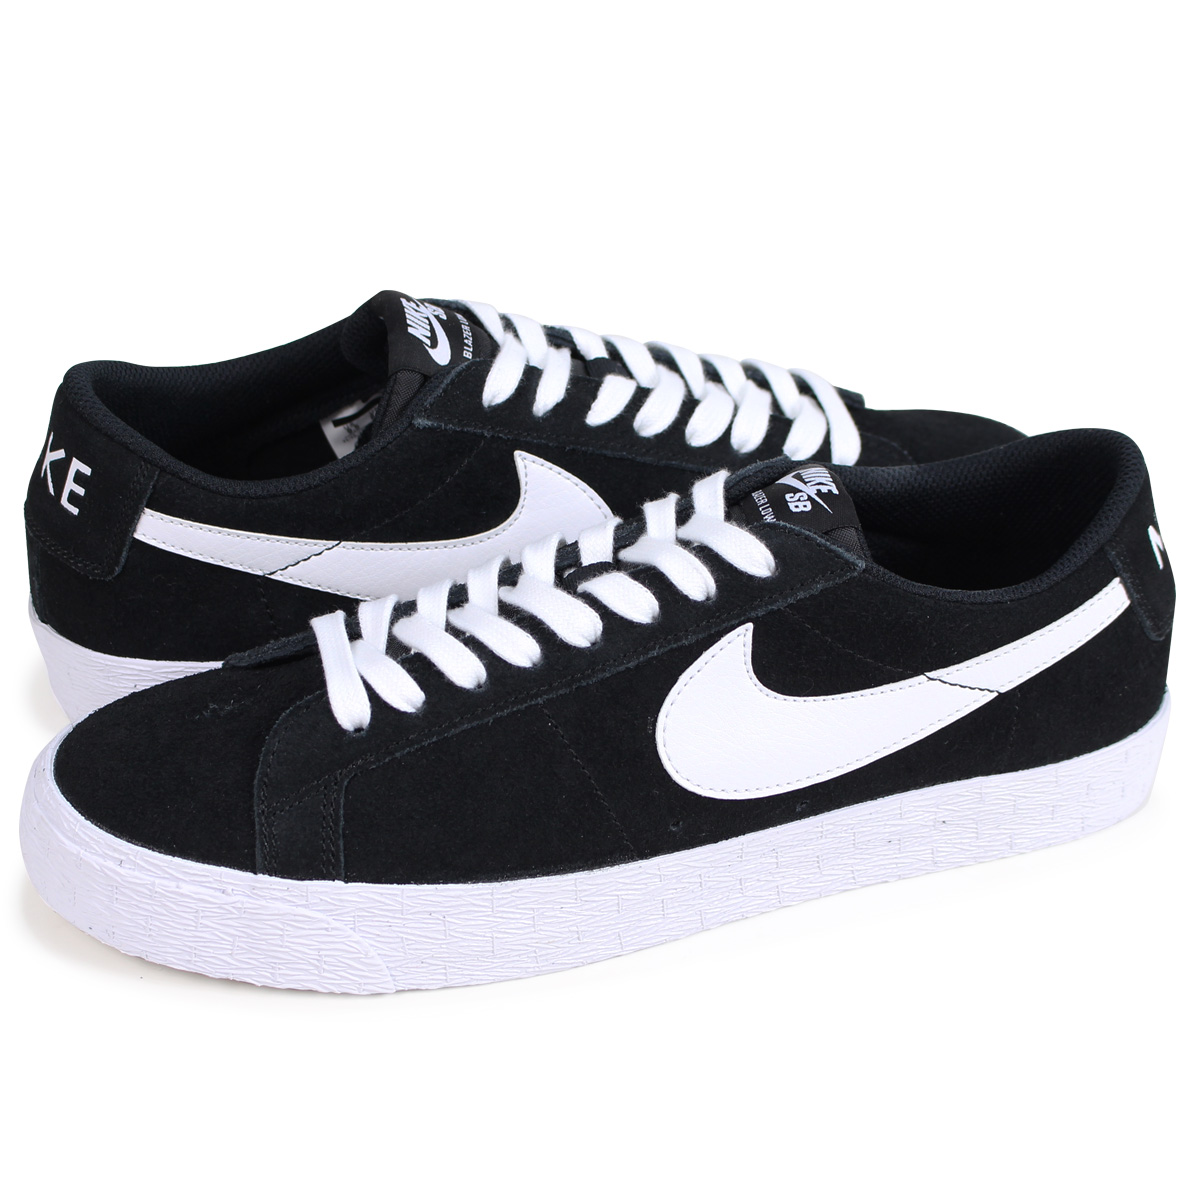 3b9e3d81837 Whats up Sports  NIKE BLAZER ZOOM LOW Nike SB blazer low sneakers ...